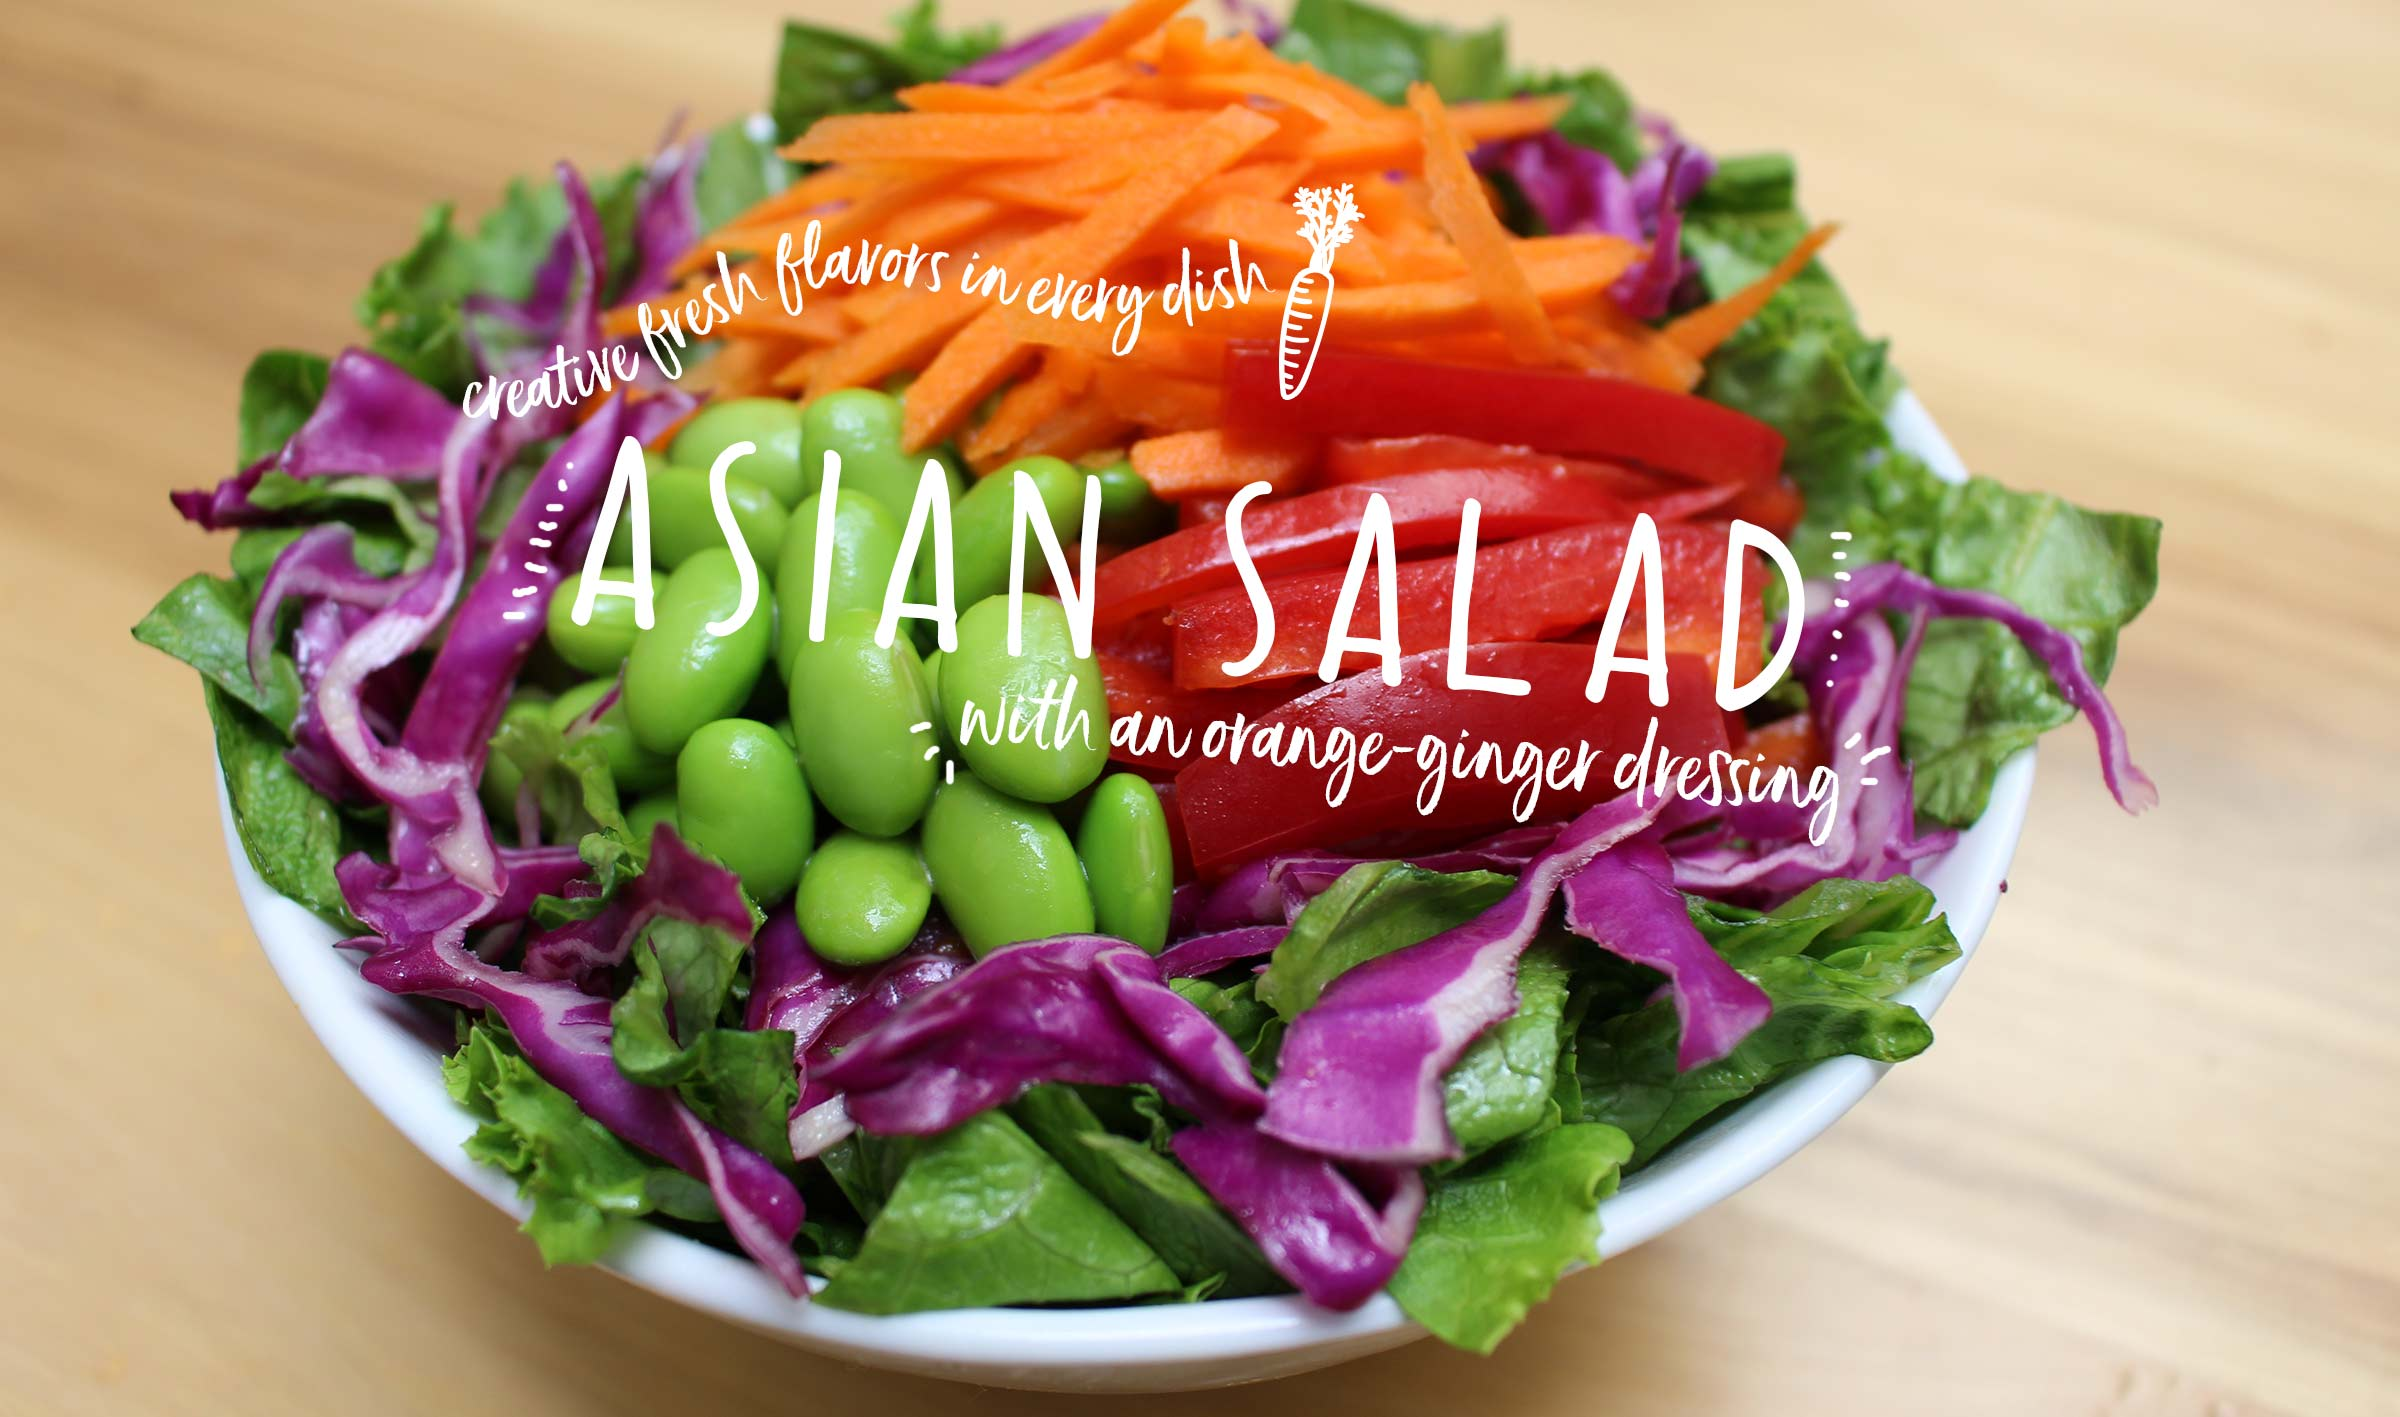 Asian Salad made with clean ingredients